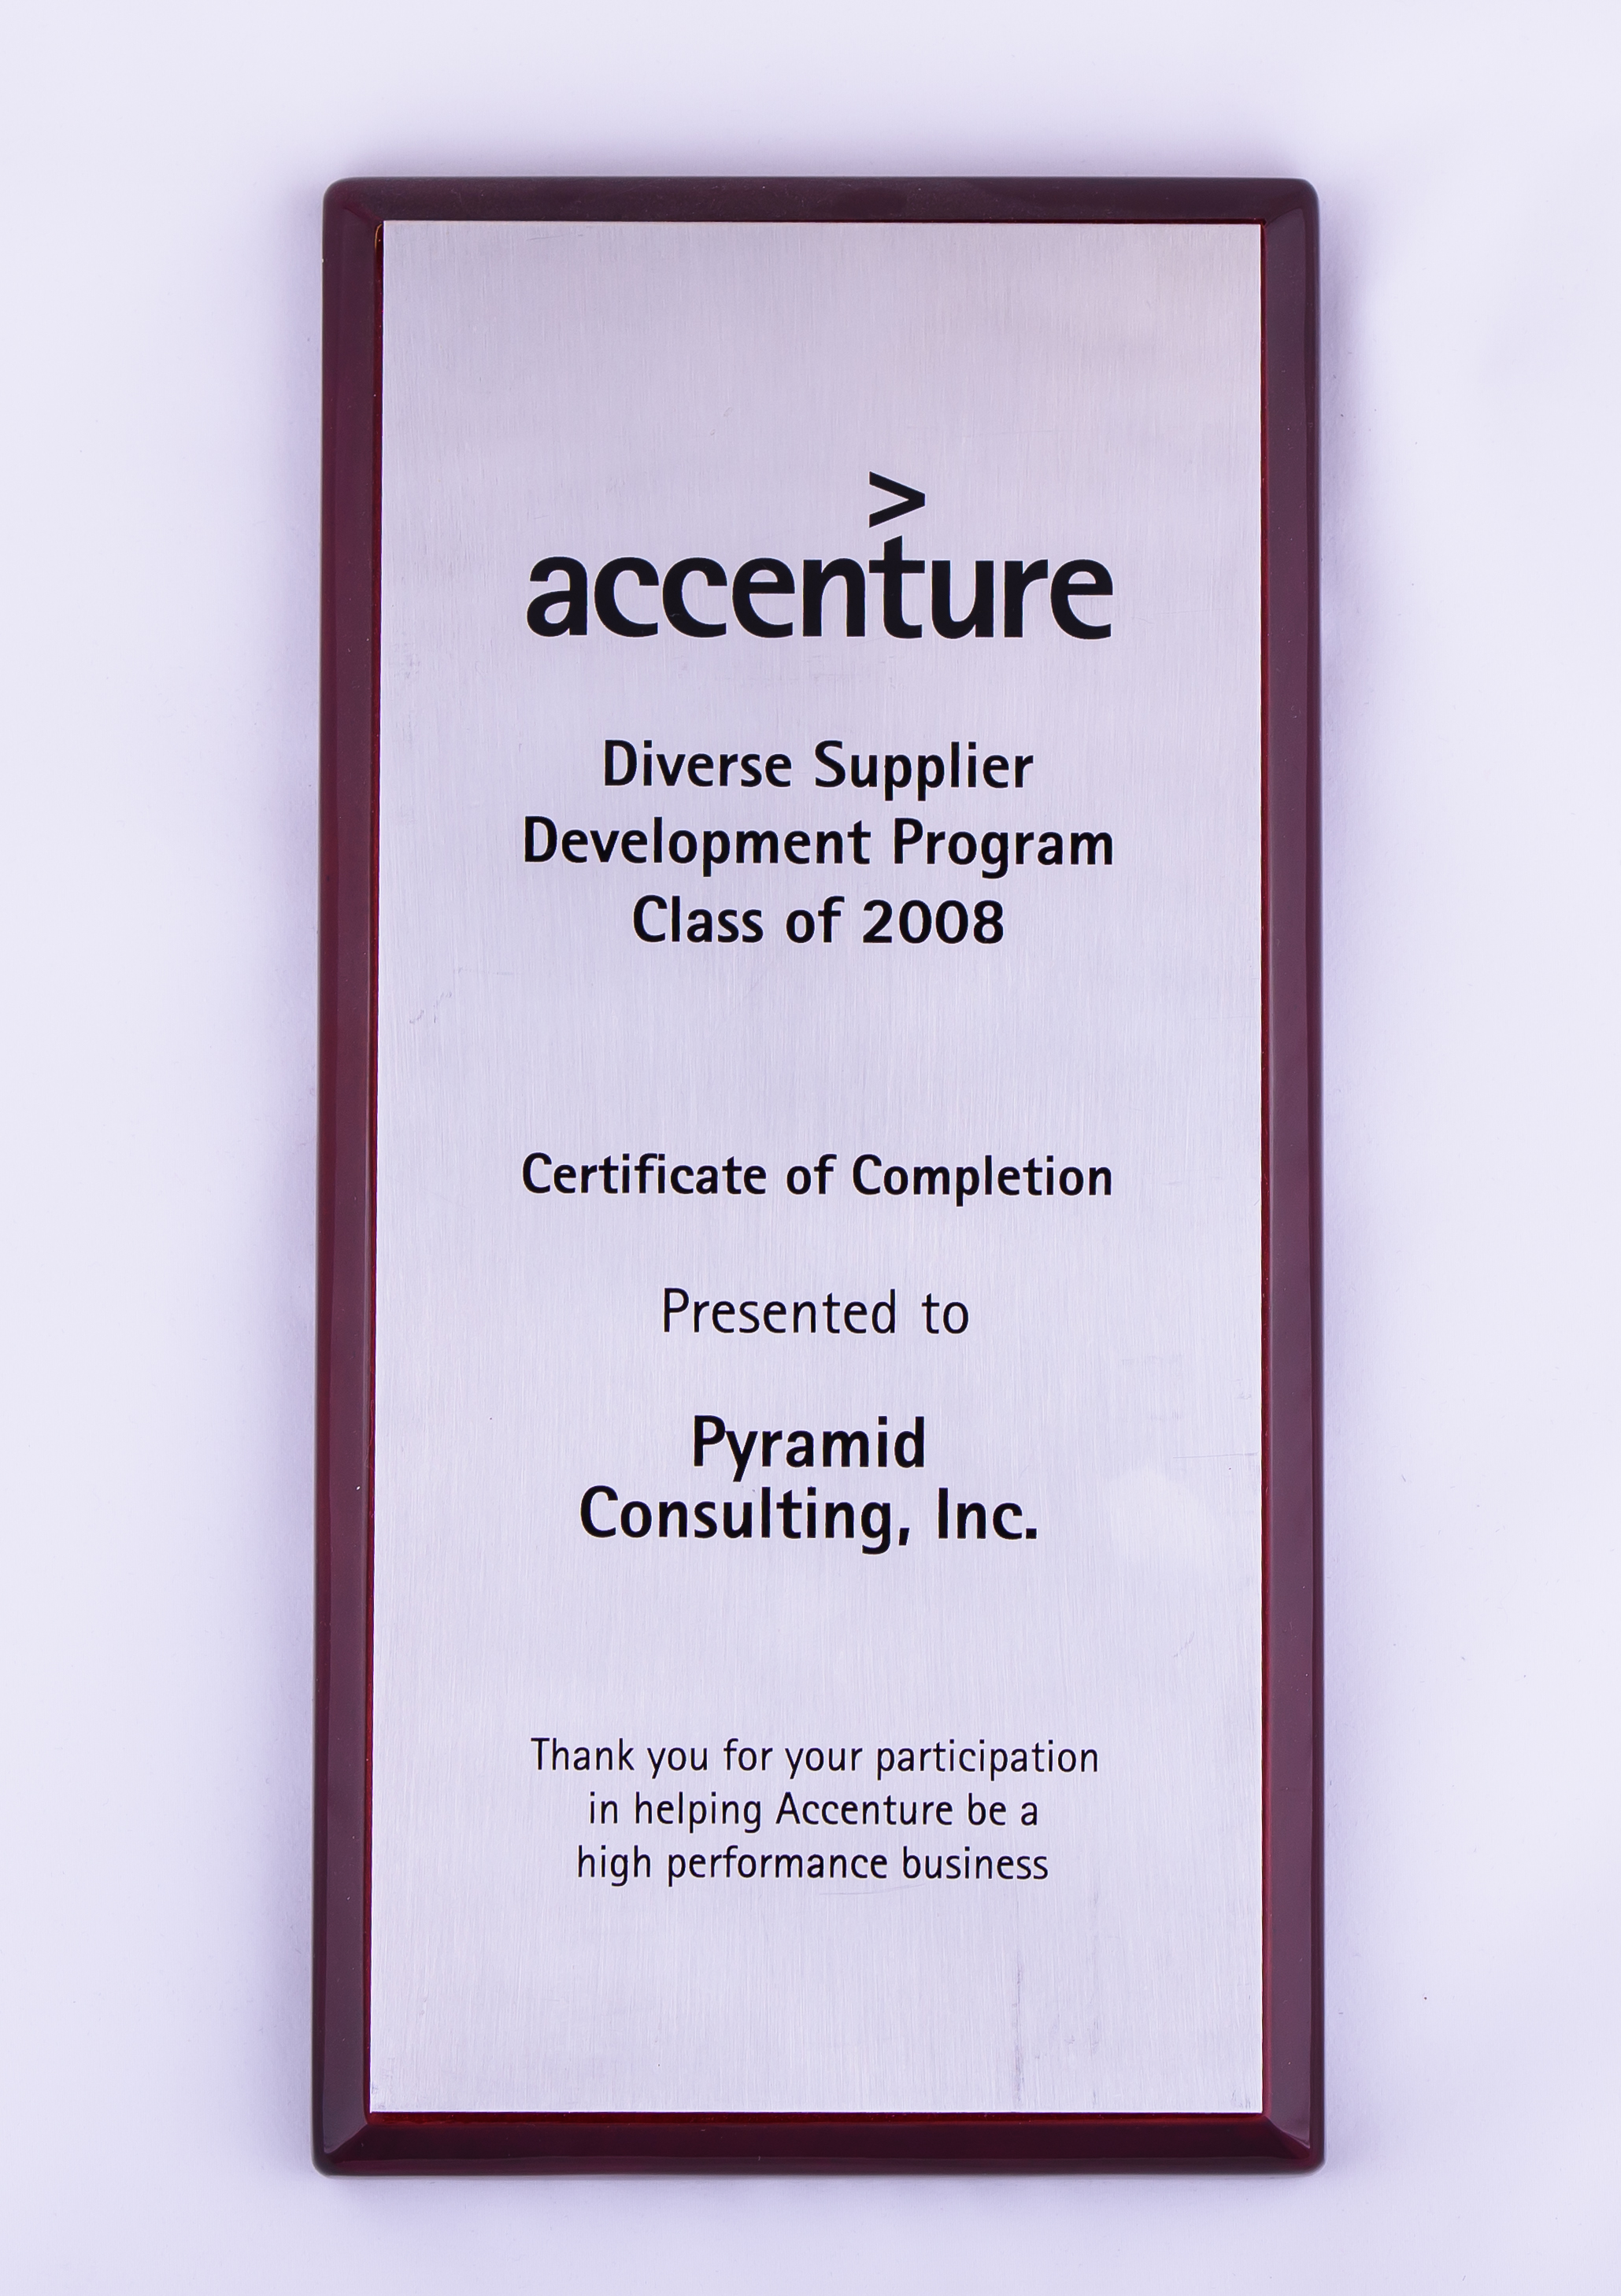 2008 Diverse Supplier Development Program Certificate of Completion